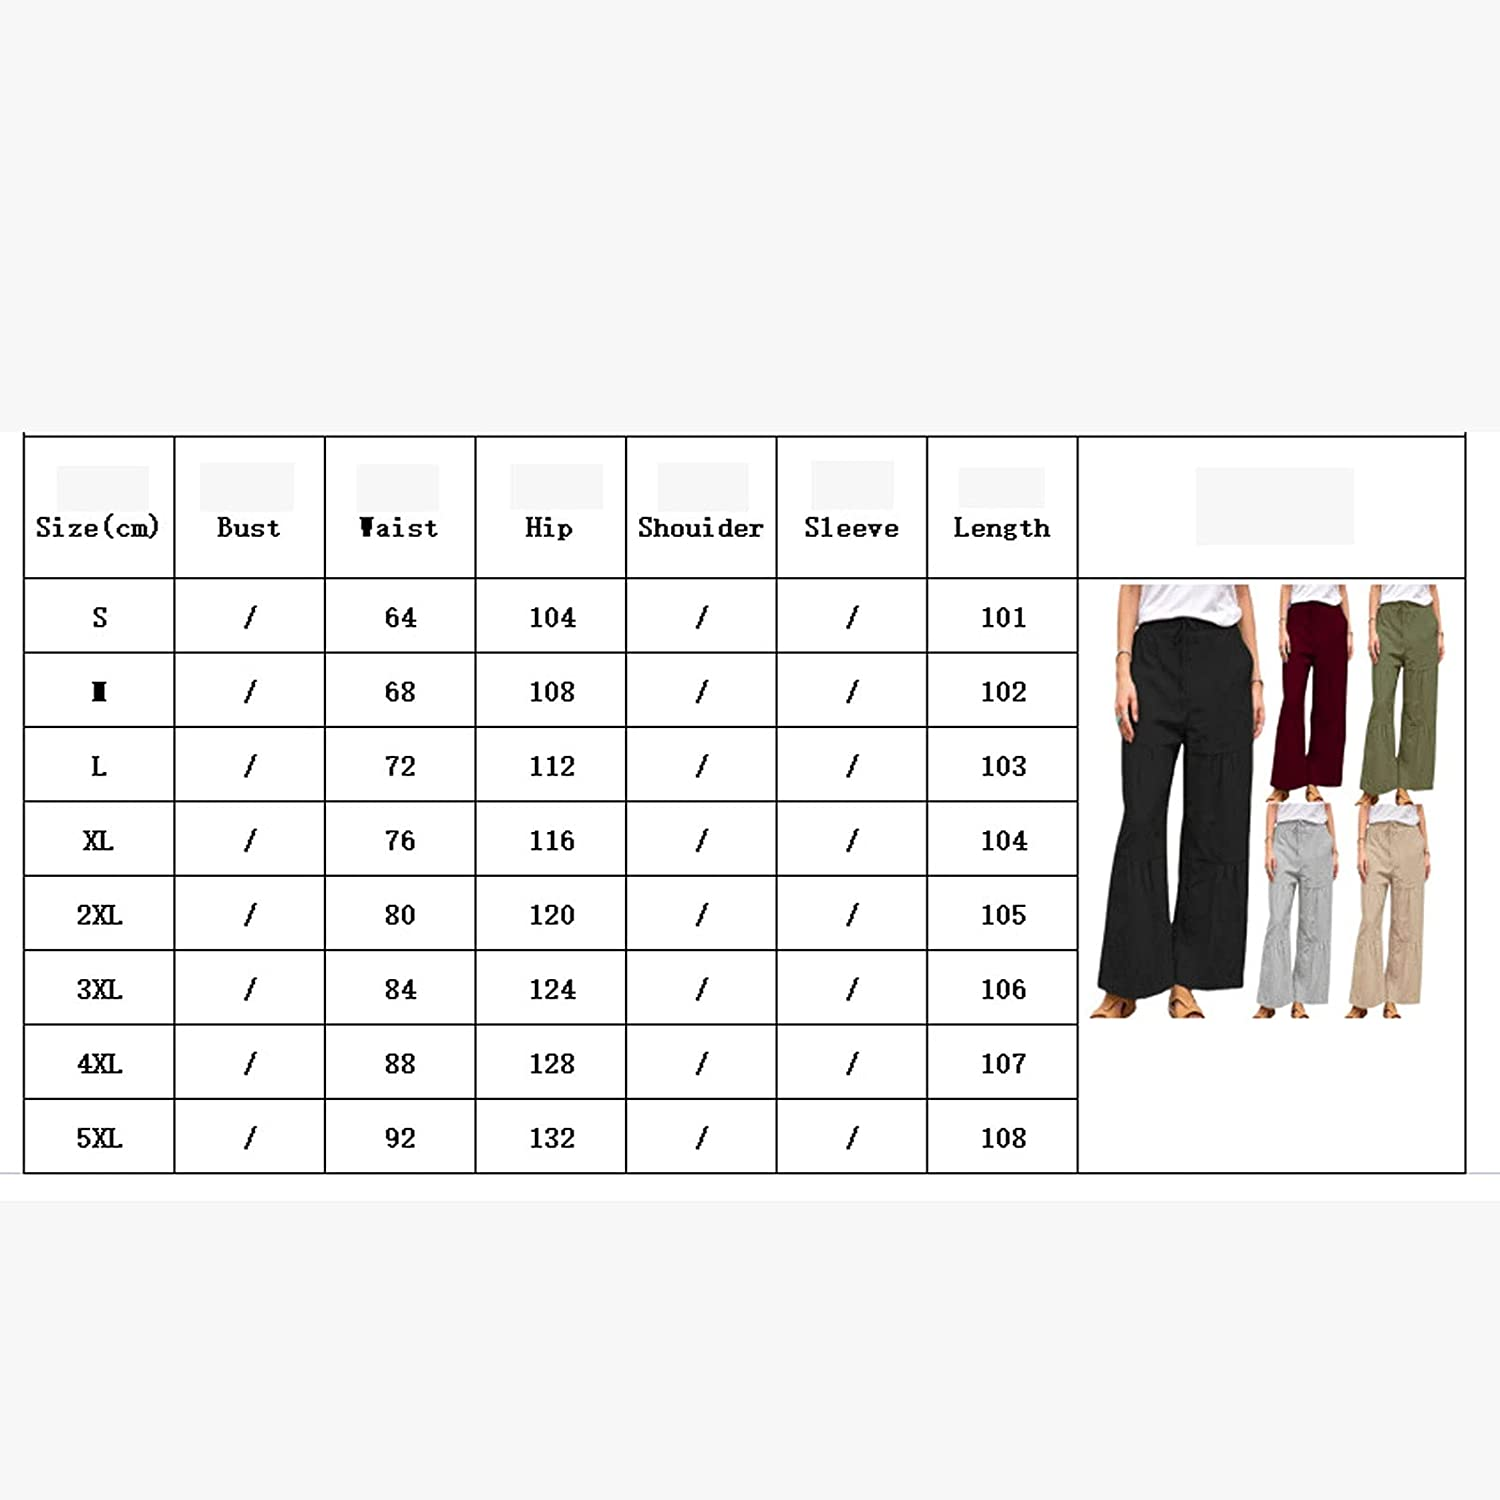 GUOQUN-SHOP Women's Linen Pants Drawstring Elastic Waist Pants Casual Loose Fit Comfy Lounge Pants with Pockets Trousers (Color : Grey, Size : Small)